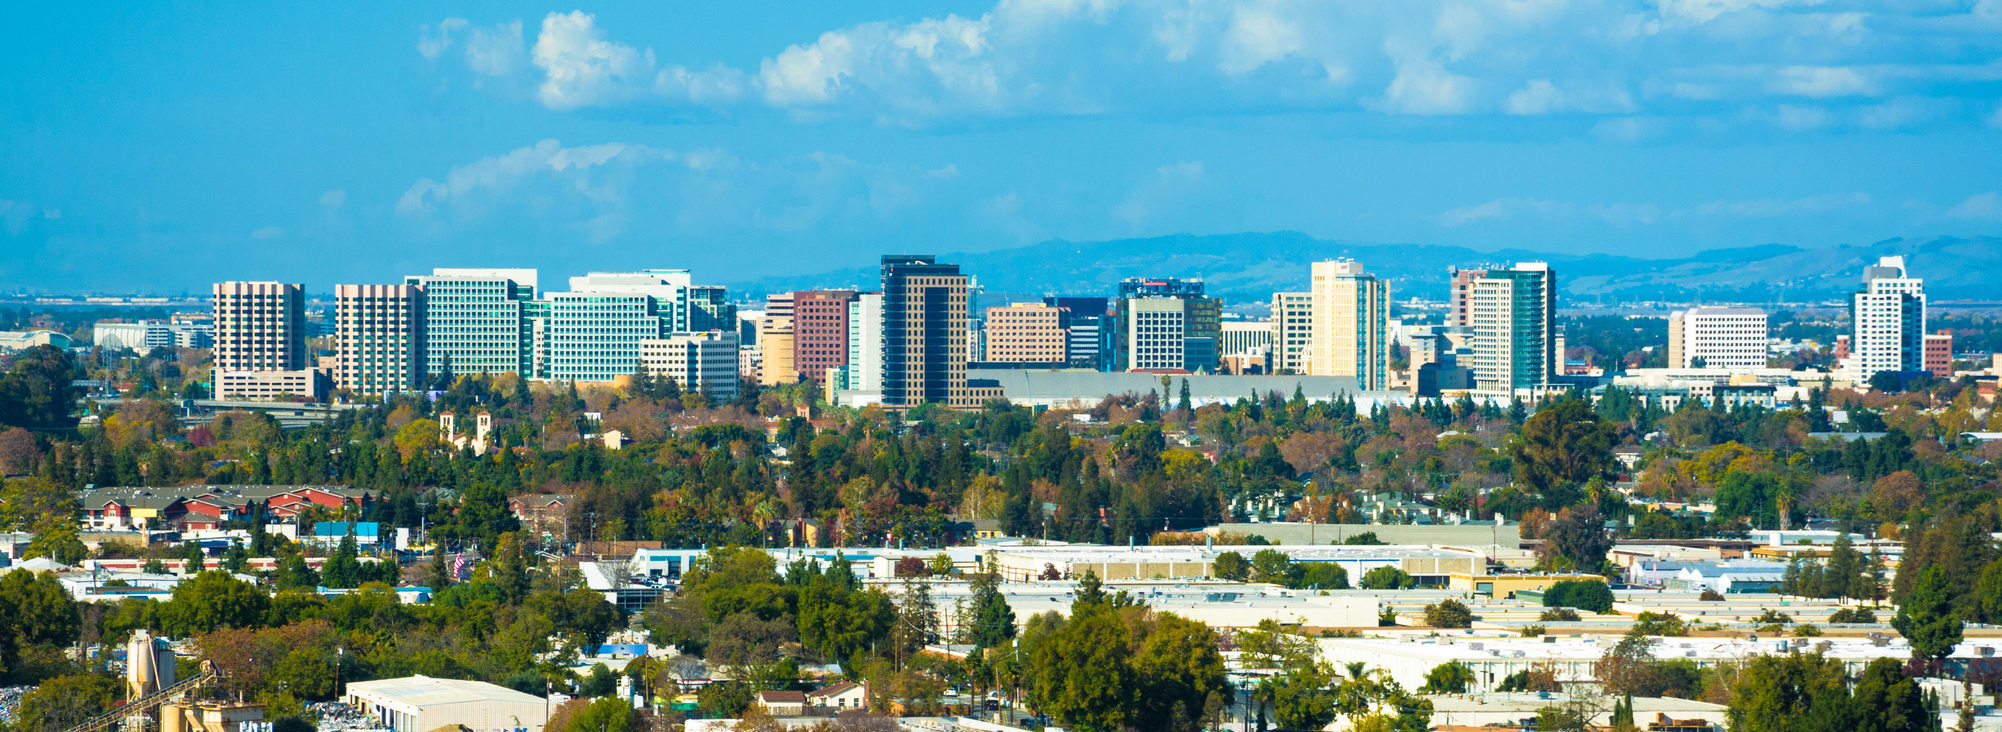 Panorama of the San Jose skyline